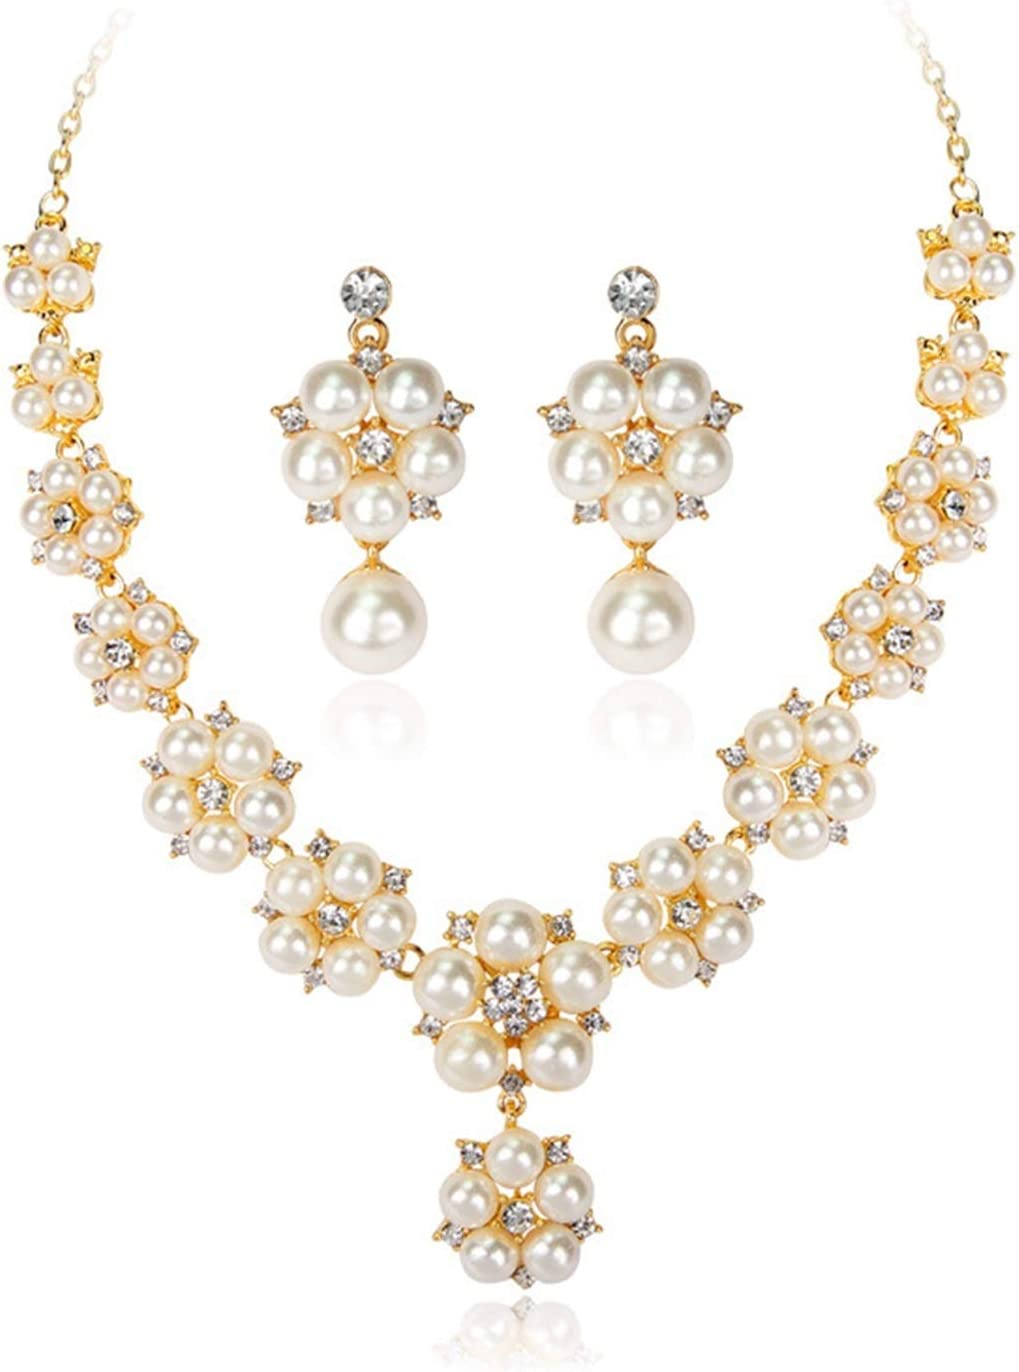 SFQRYP Fashion Minneapolis Mall At the price of surprise Items Pearl Jewelry Accessories Set Bride N